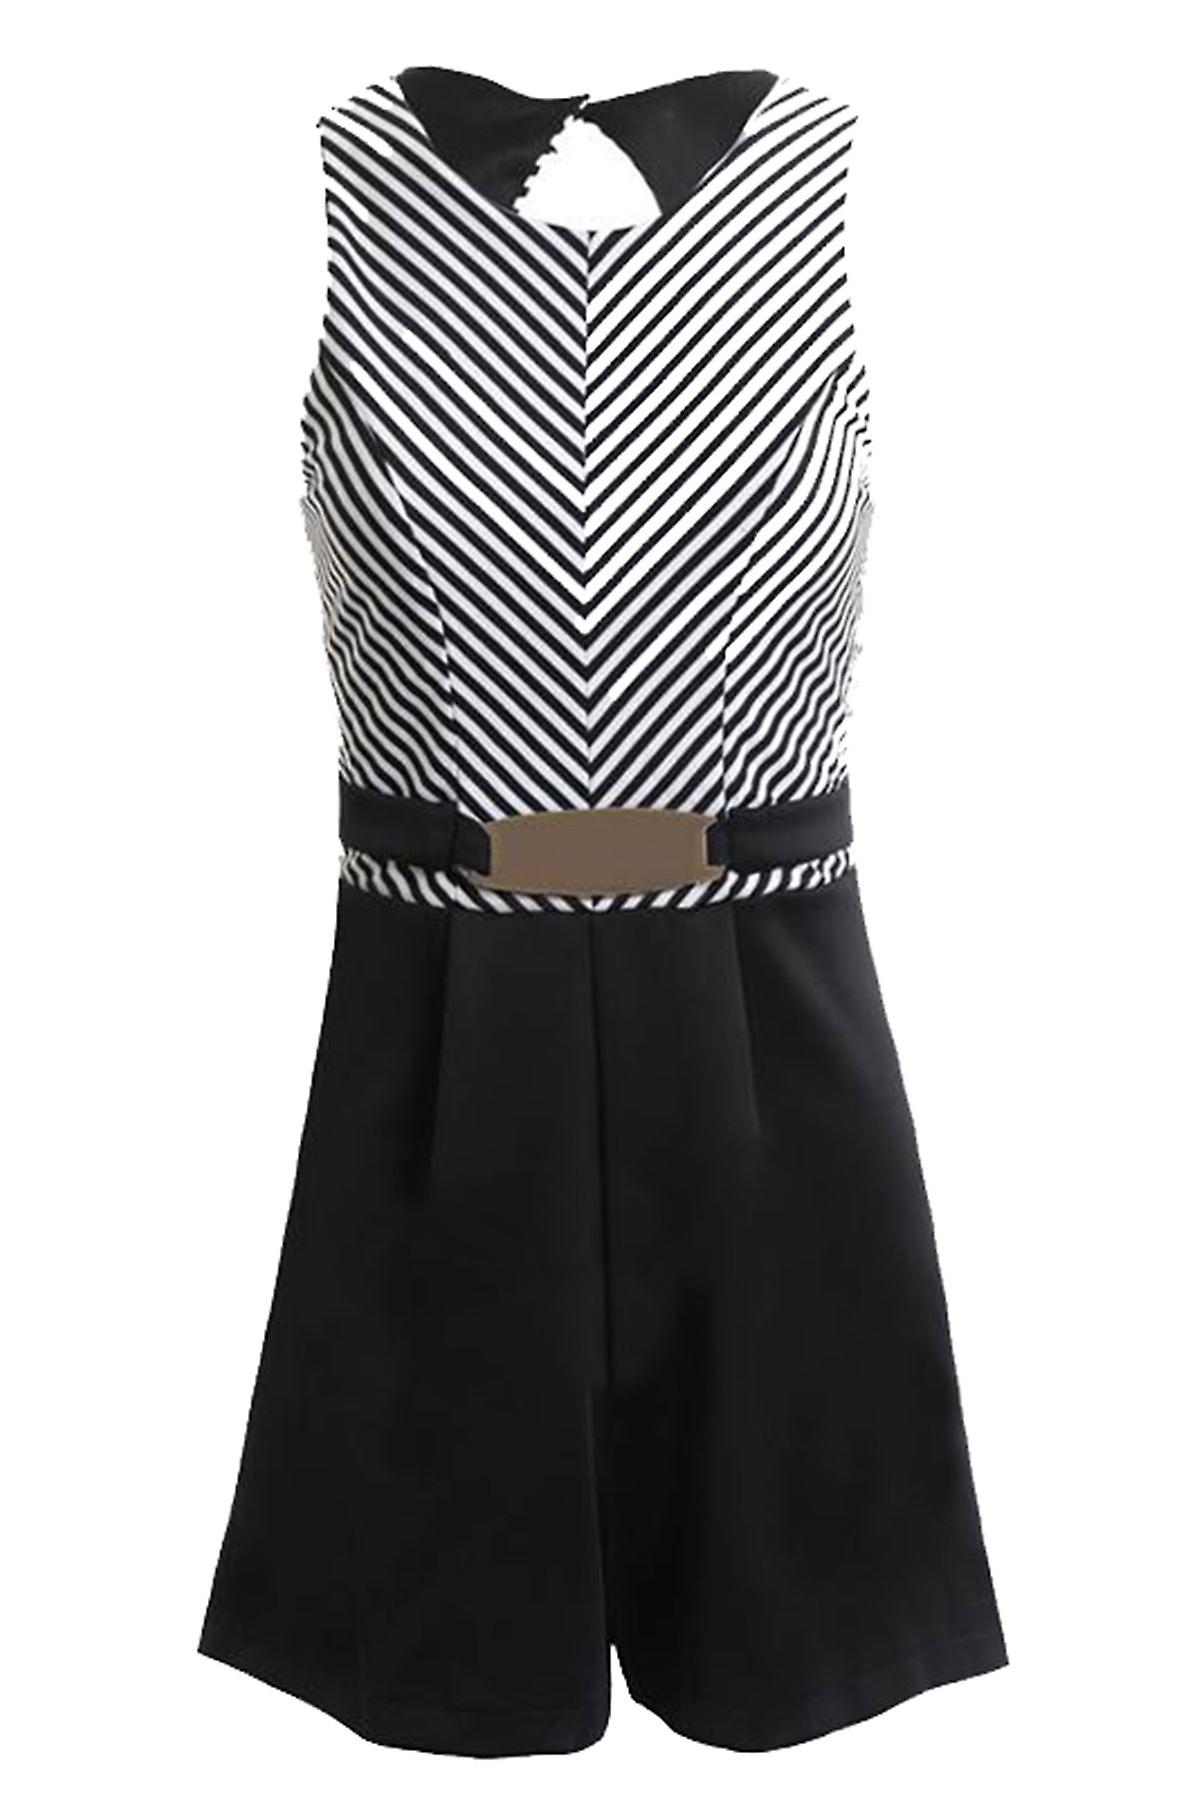 New Ladies Sleeveless Belted Black White Stripe Women's Skater Playsuit